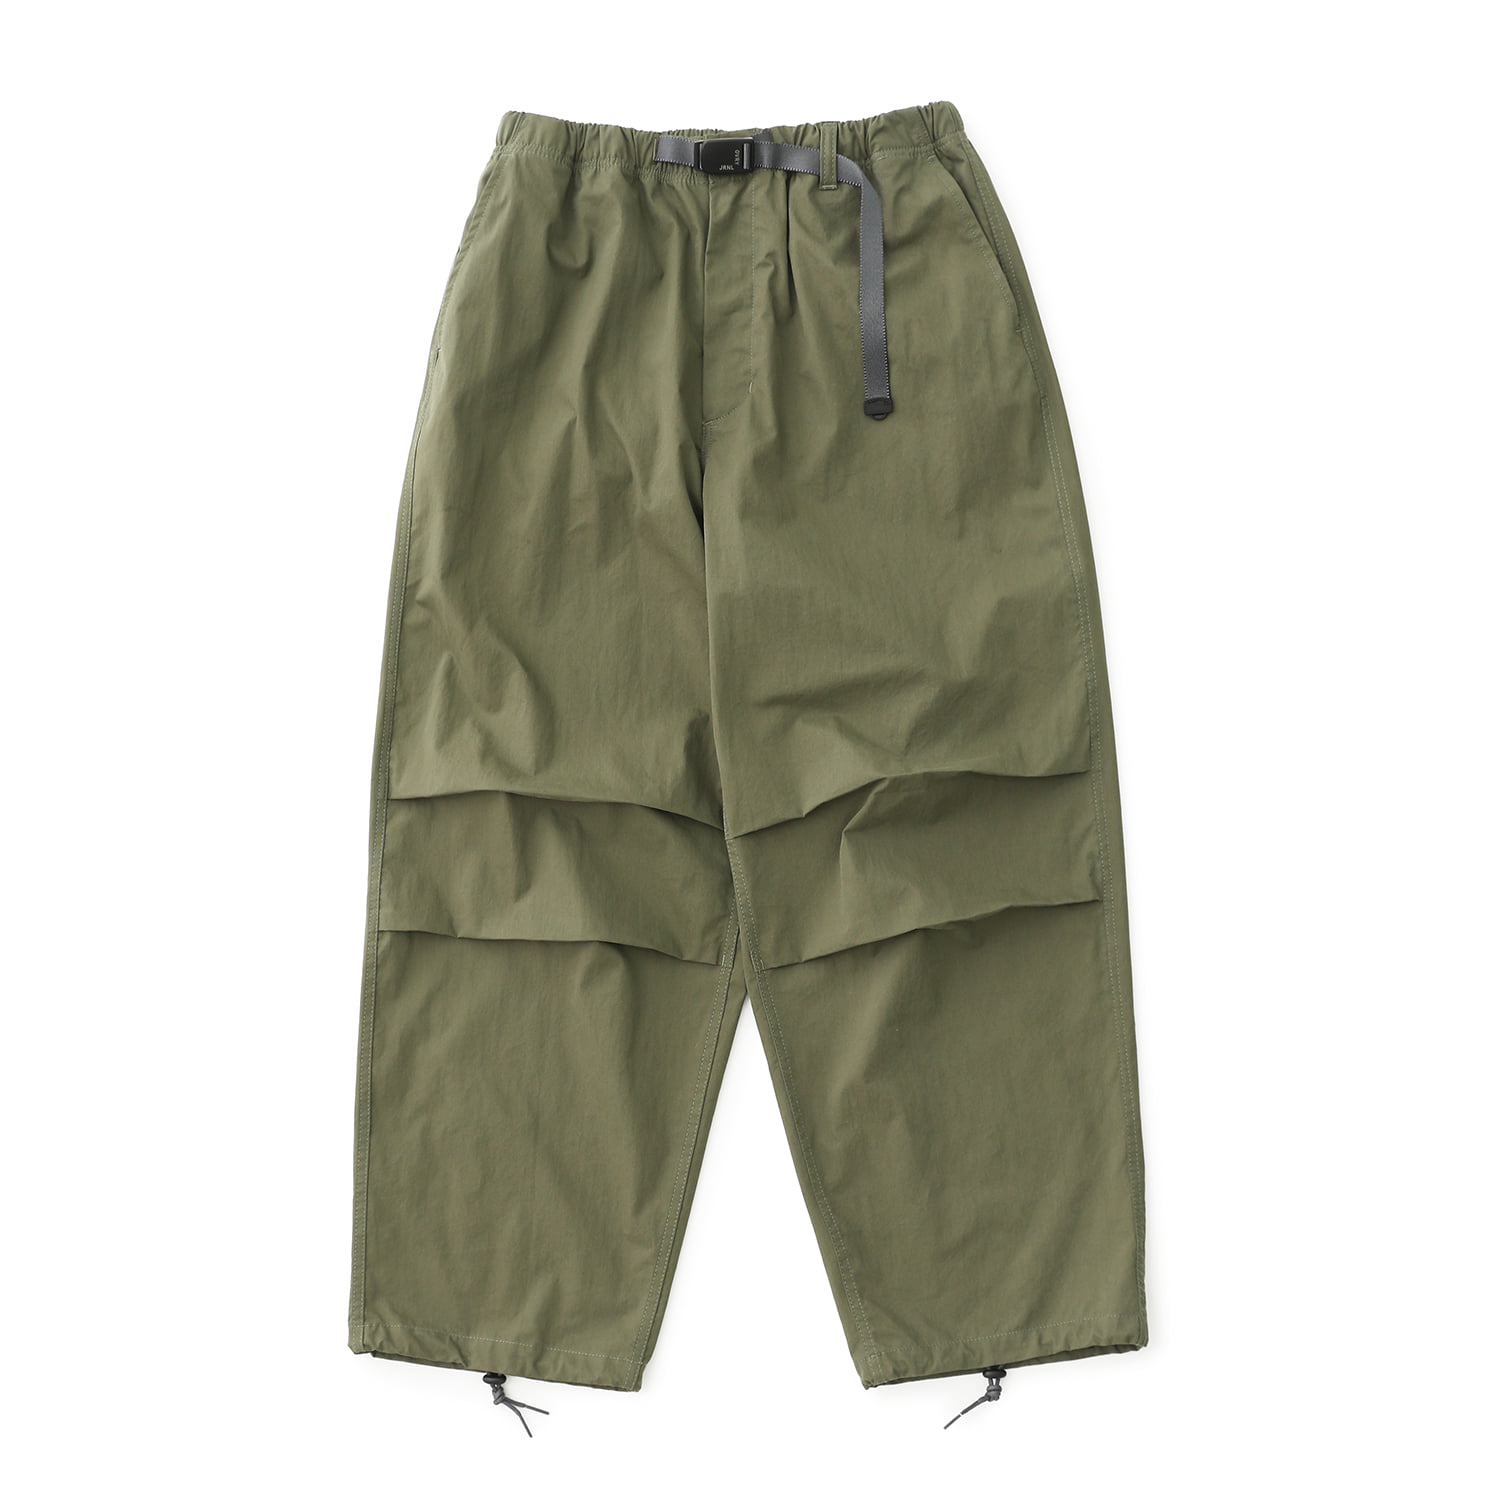 Overlay Pants (Olive)